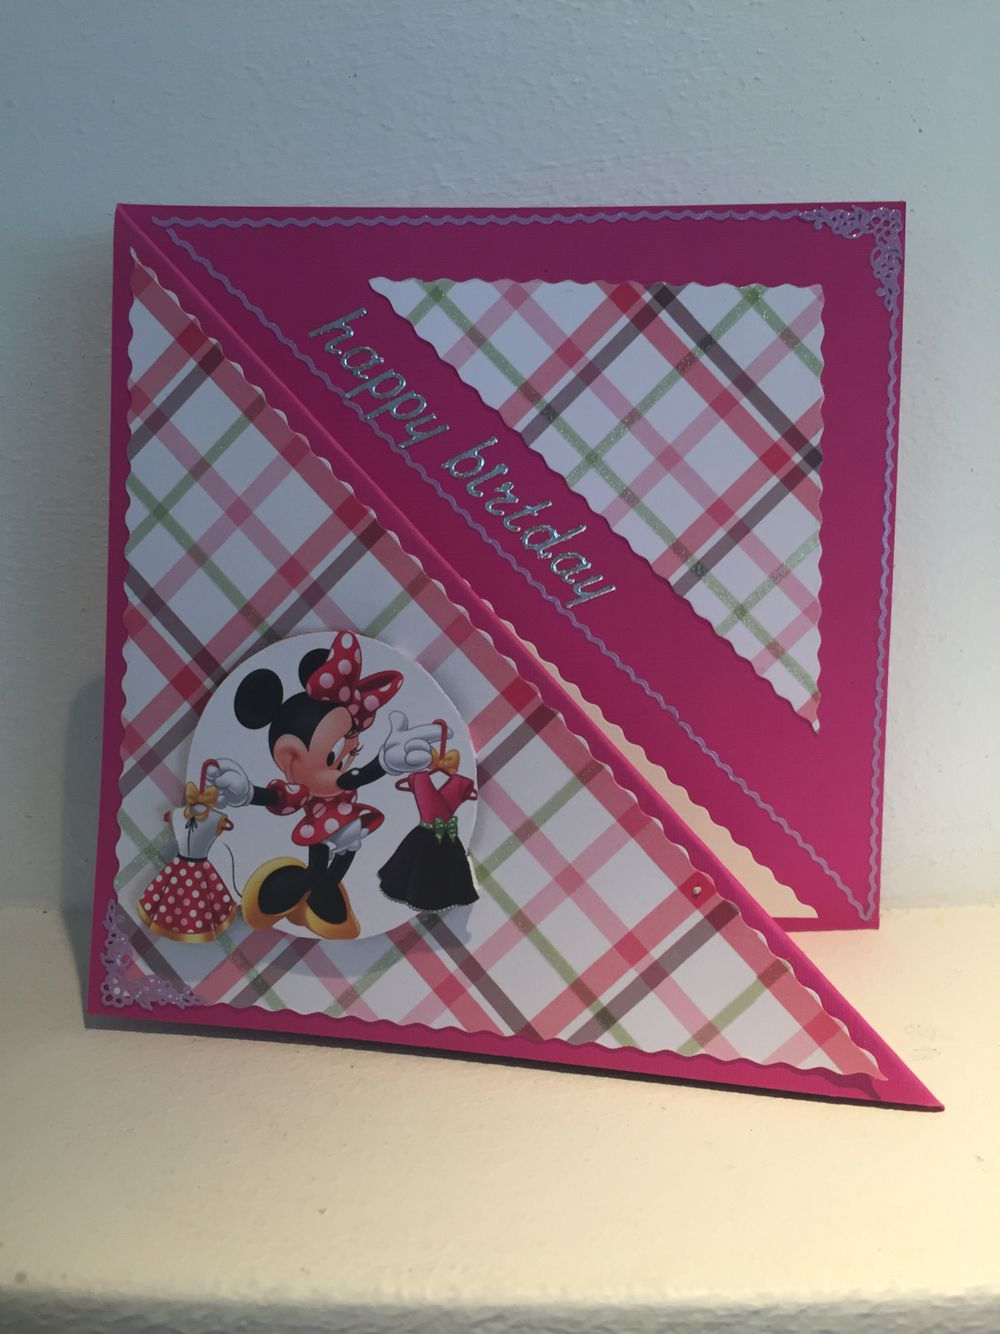 Minnie Mouse card made by me!